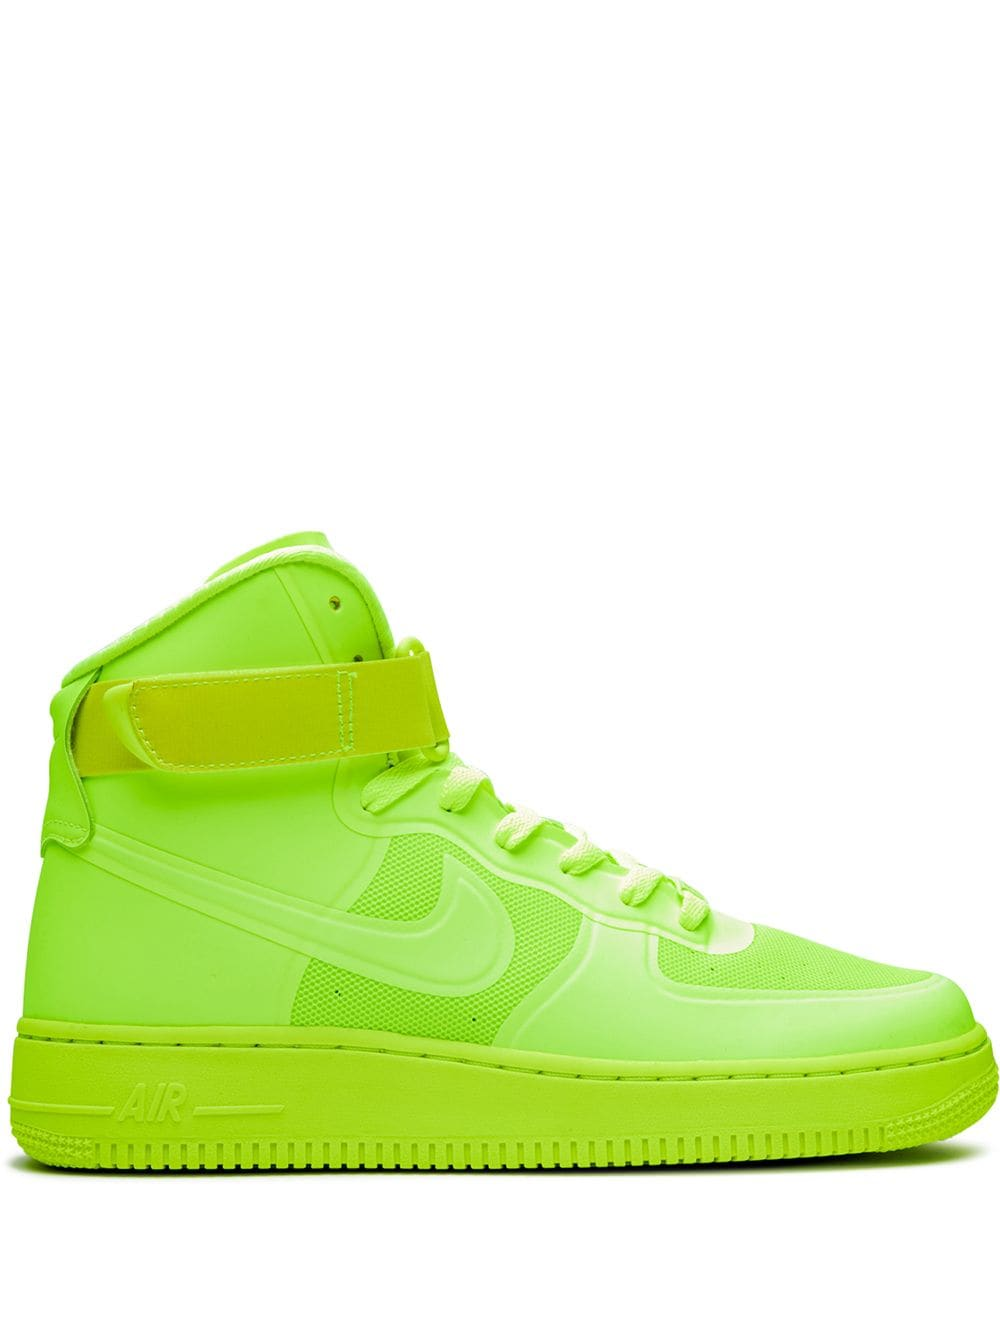 nike air force high tops